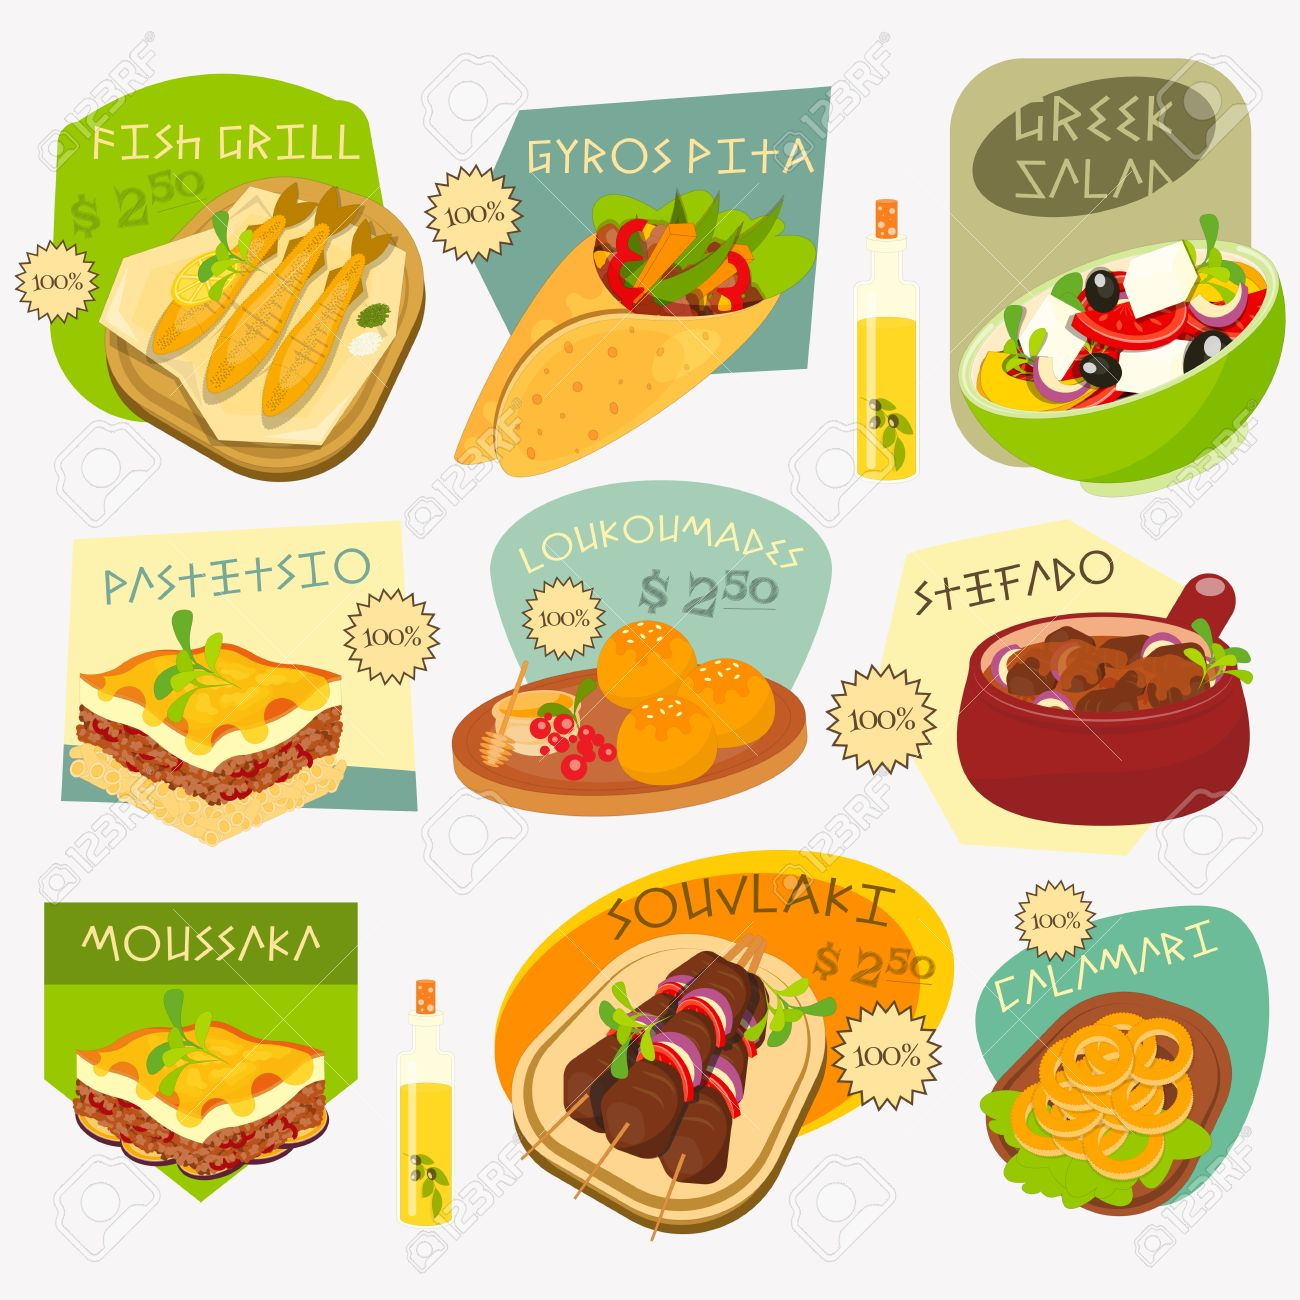 The Most Elegant free greek food clipart intended for your.